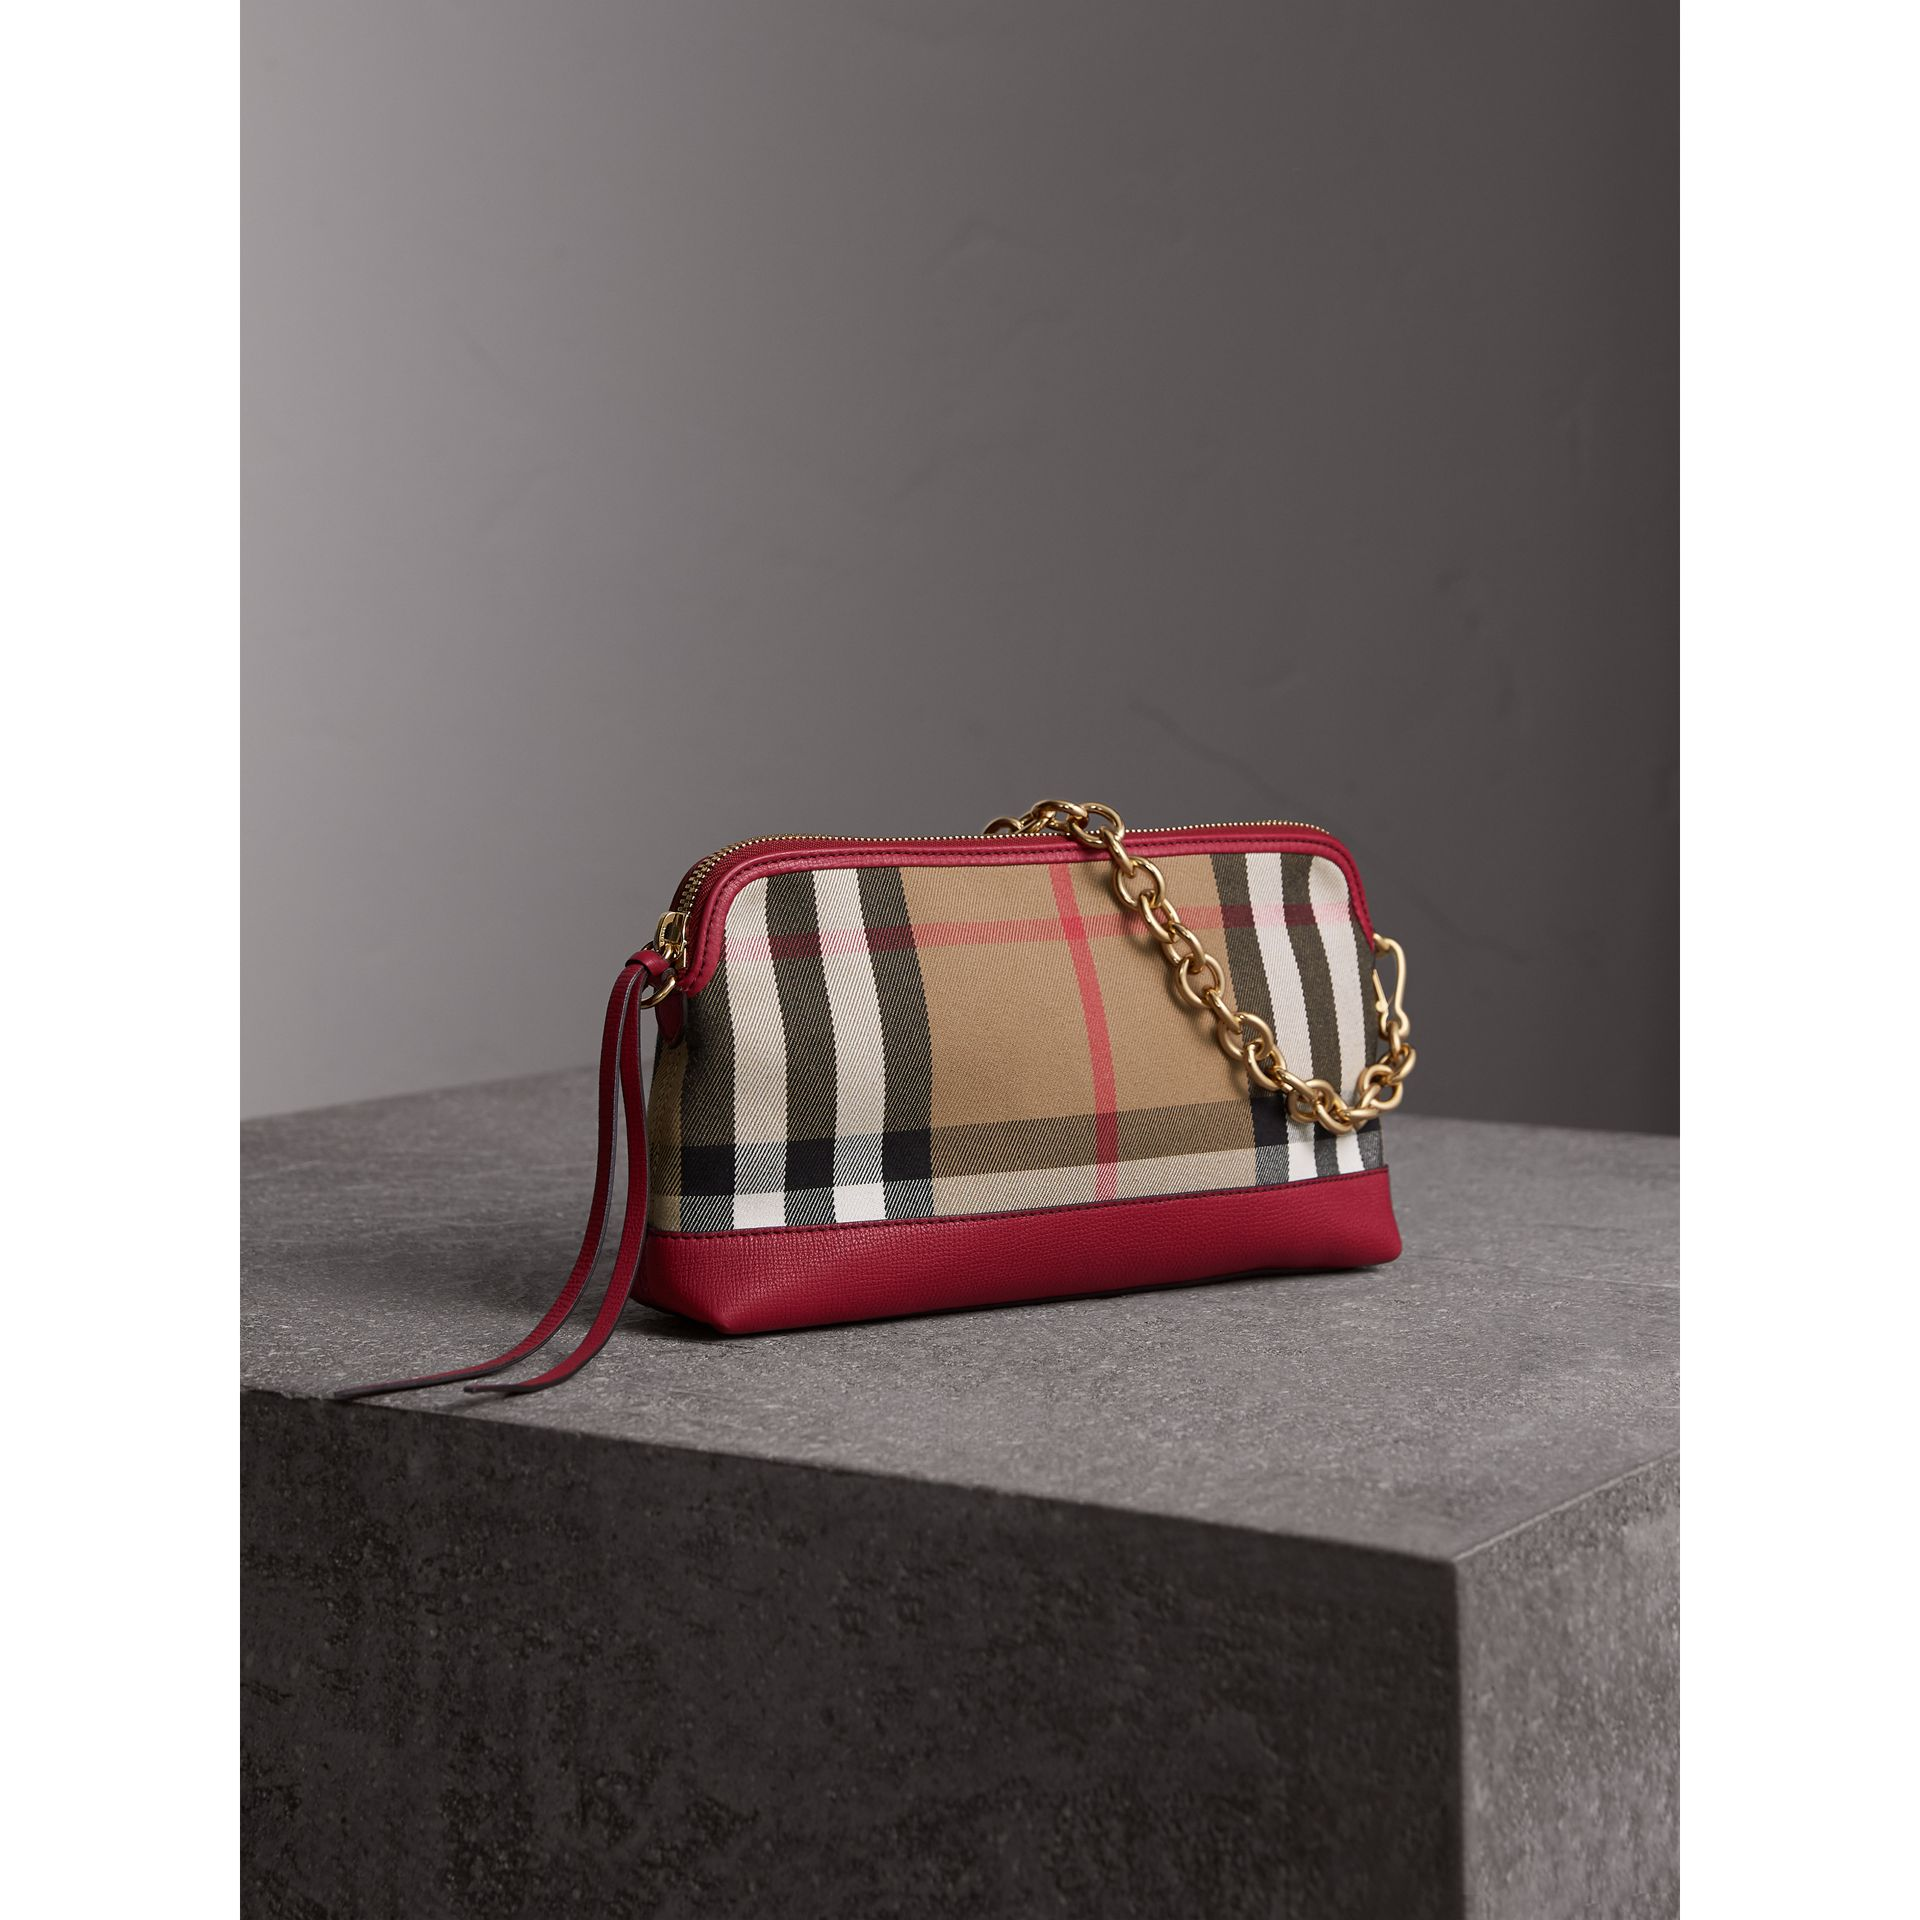 House Check and Leather Clutch Bag in Russet Red - Women | Burberry - gallery image 7